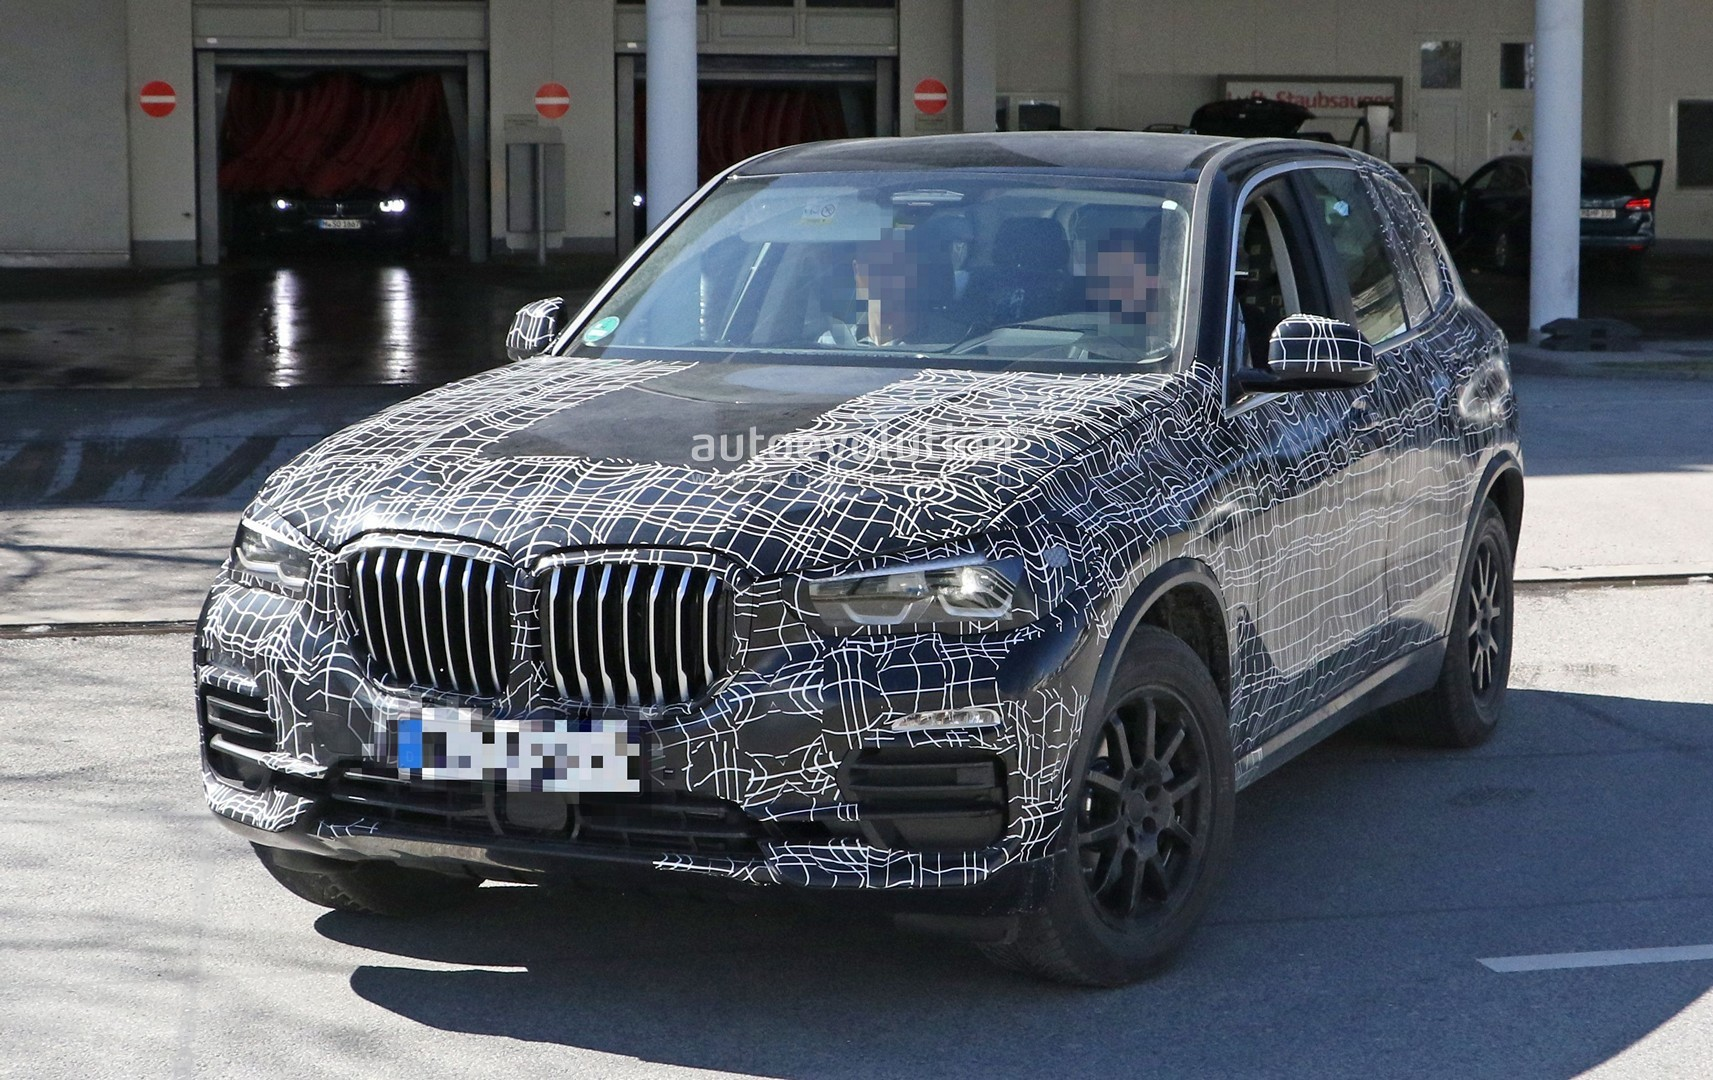 Spyshots: 2019 BMW X5 Reveals Its Interior - autoevolution